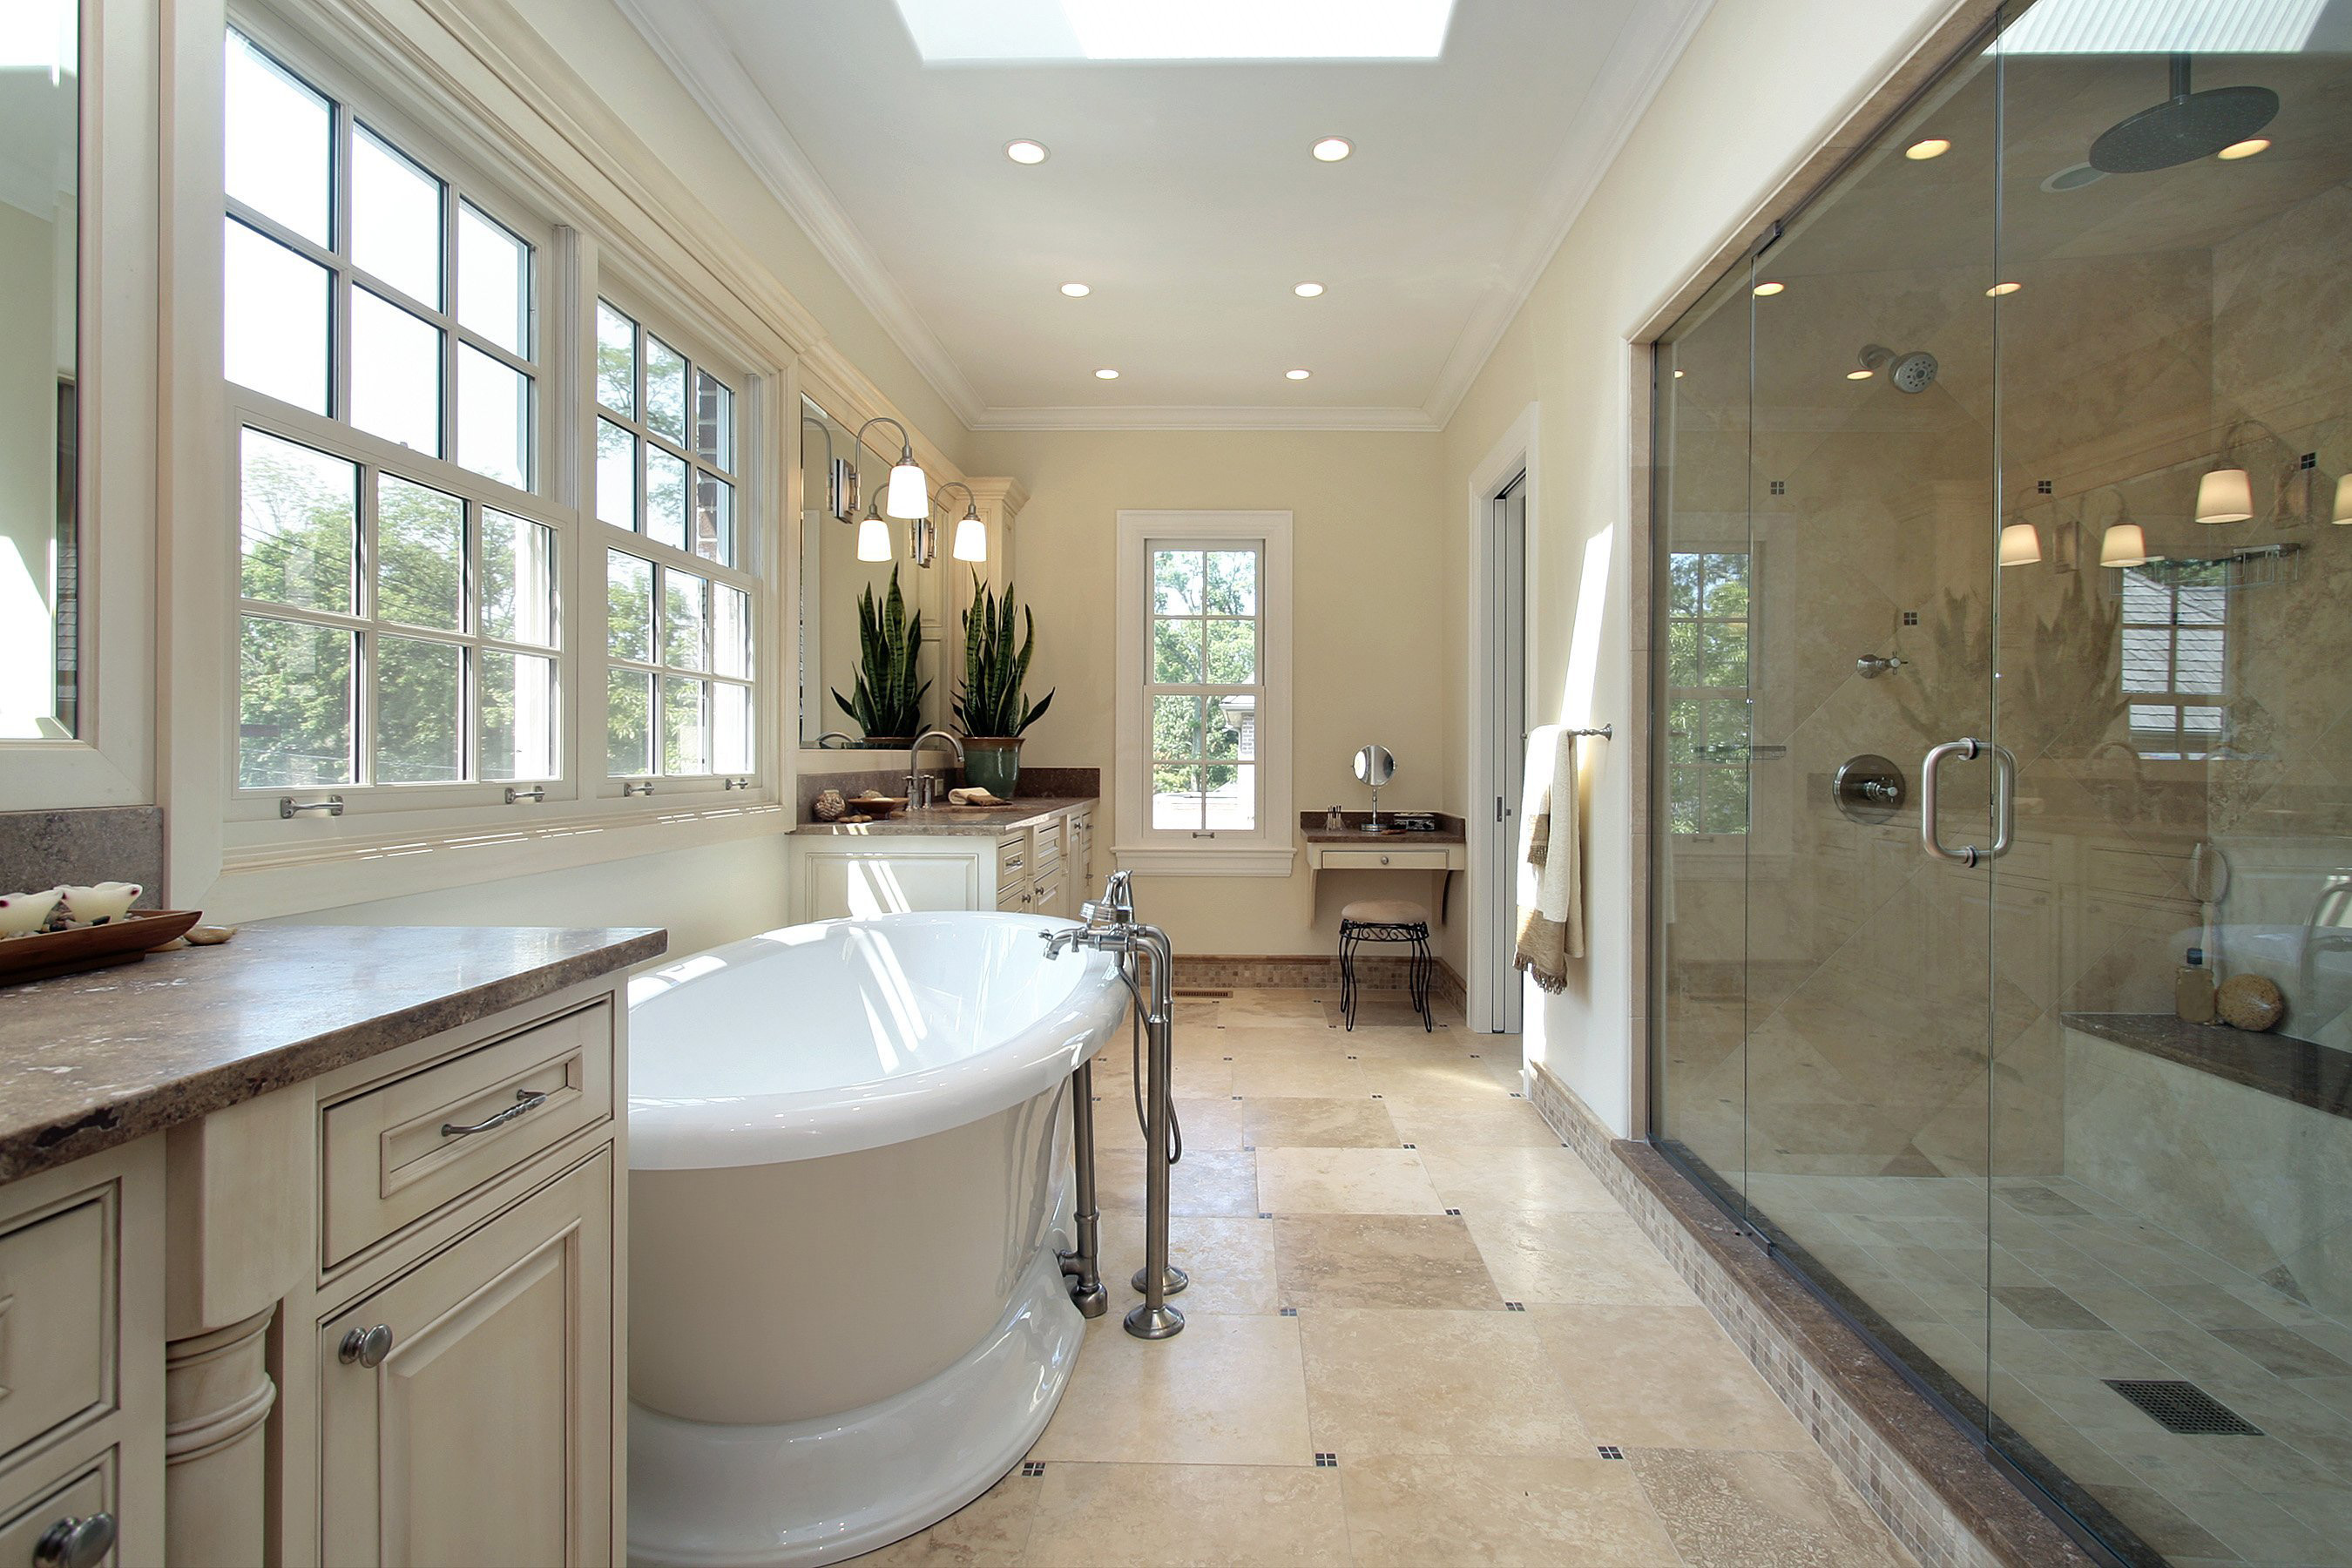 Bathroom Remodel Cost India how much does a kitchen remodel cost. cost of a kitchen remodel